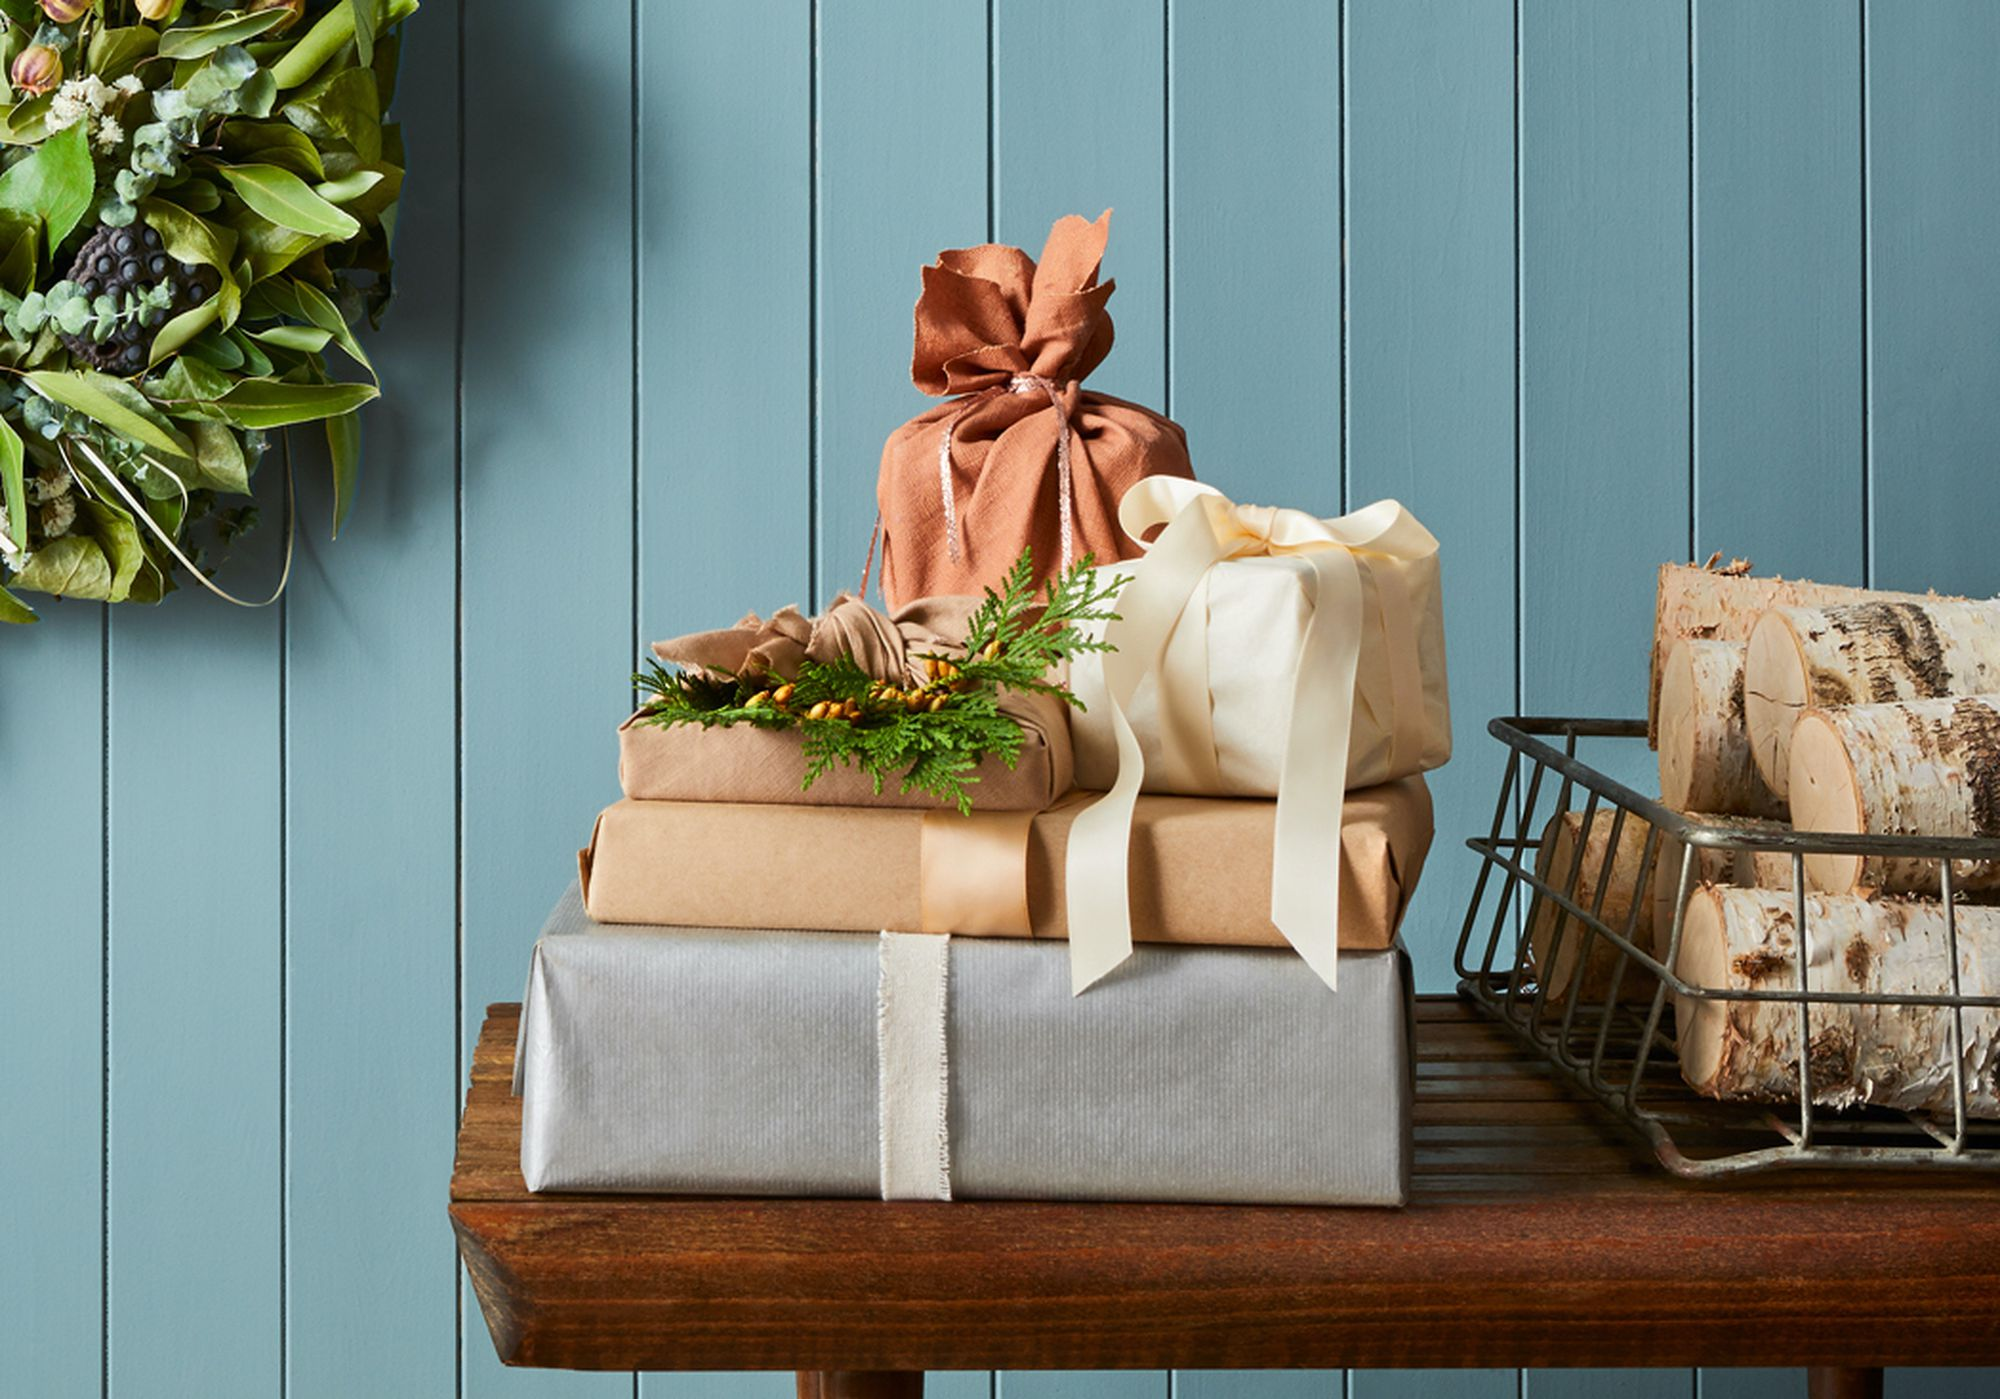 30 Gifts Under $30 That Anyone (Everyone) Will Love